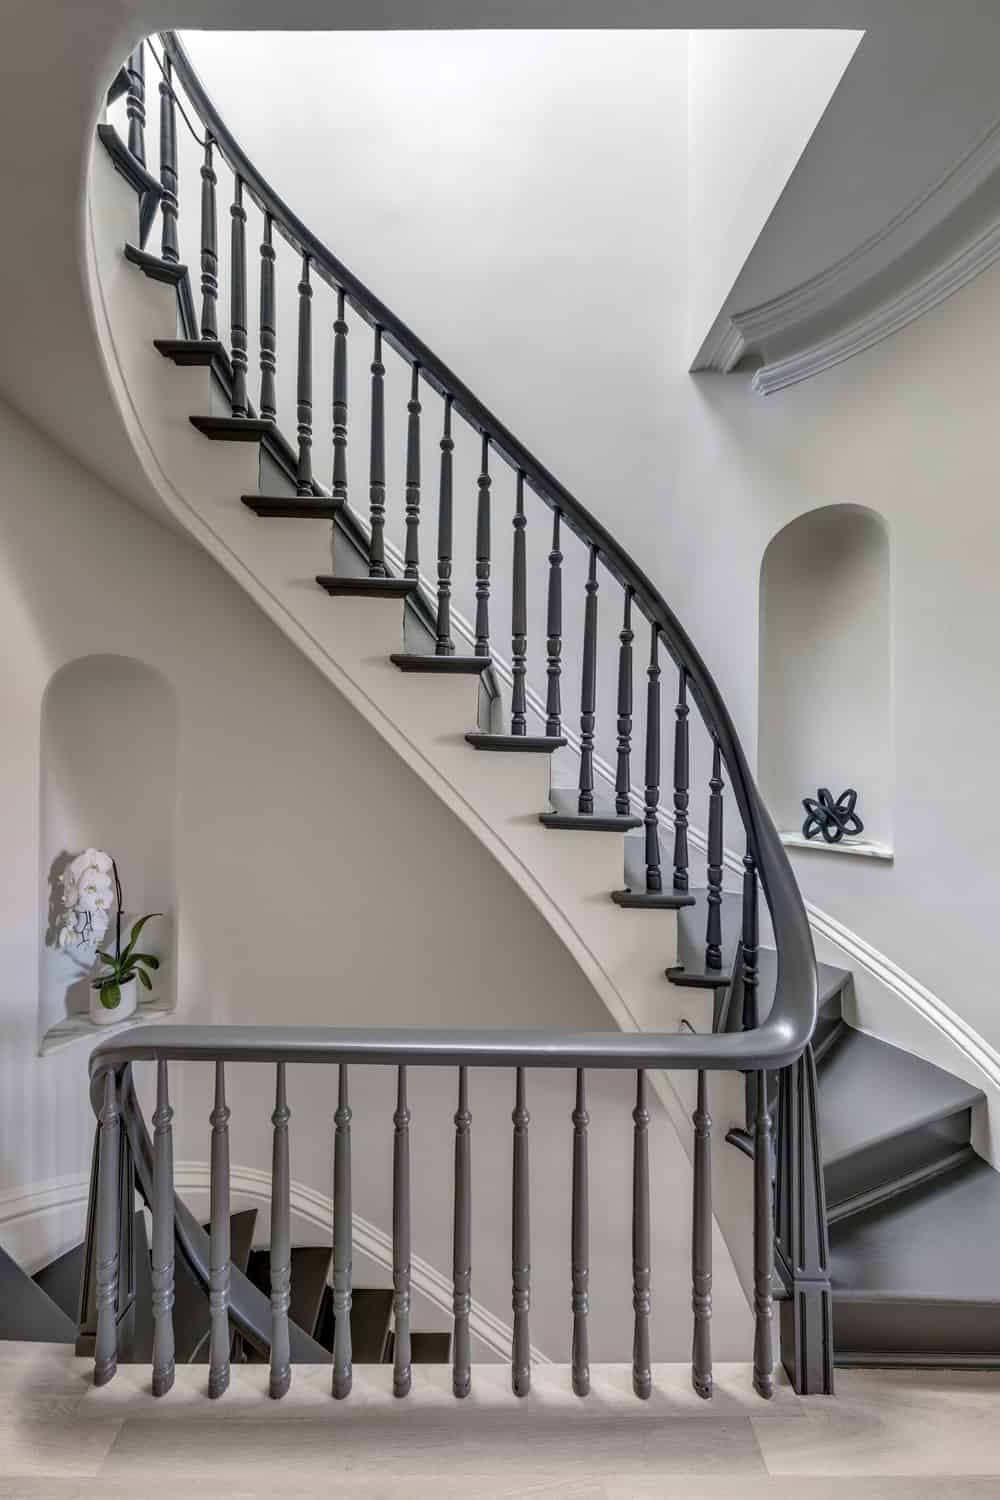 This is a look at the second-floor landing featuring the wrough-iron railings of the staircase.